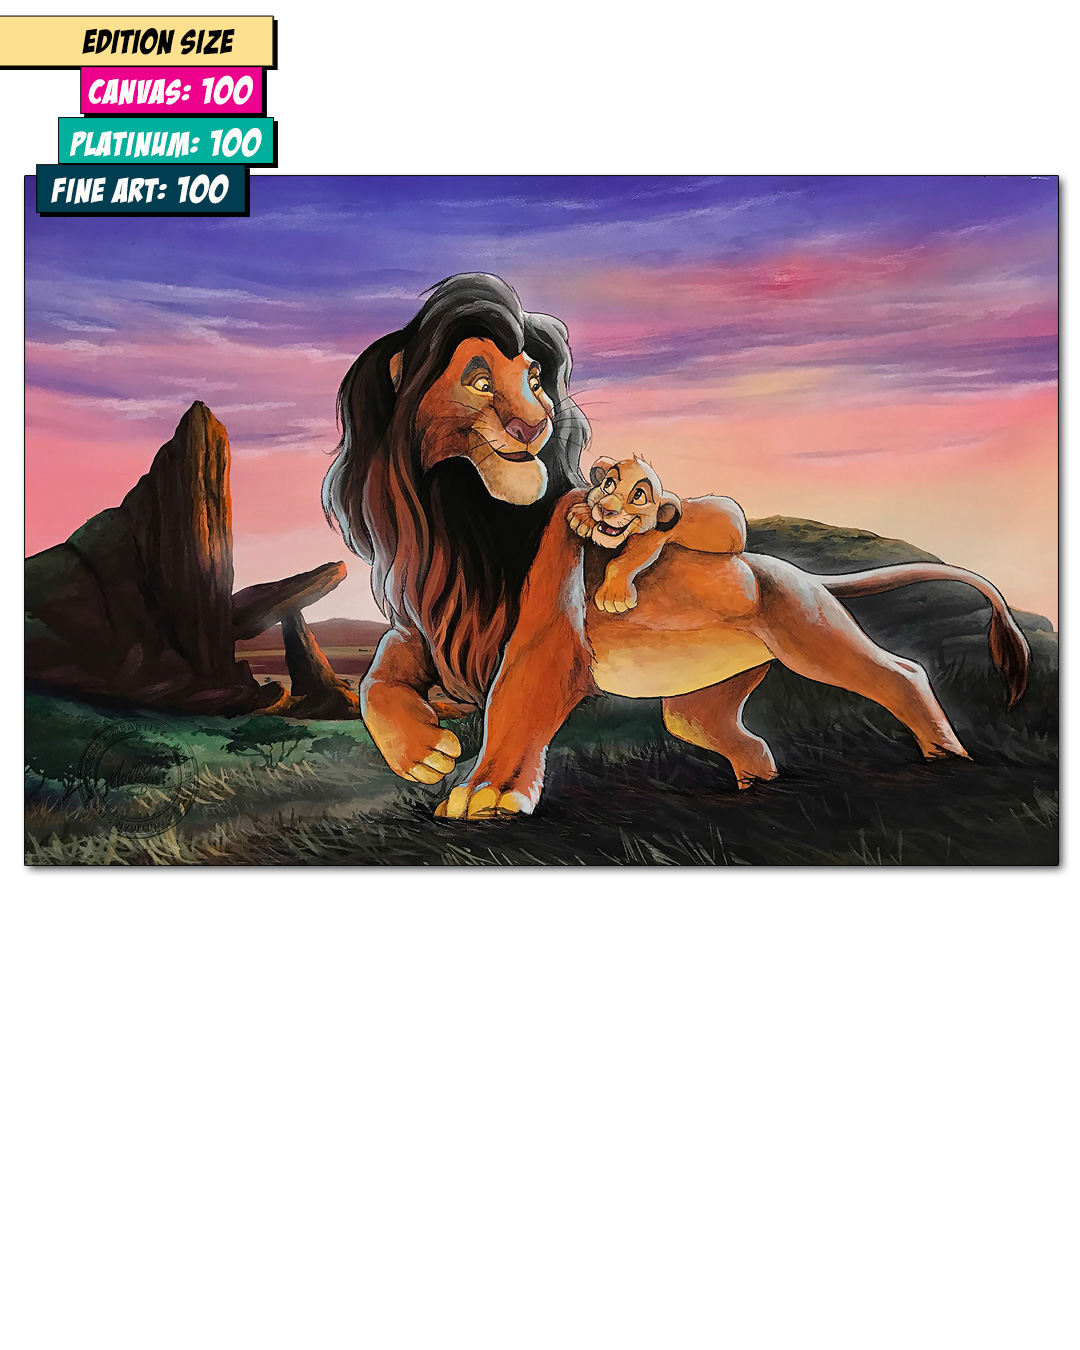 LION KING: MY FATHER AND ME